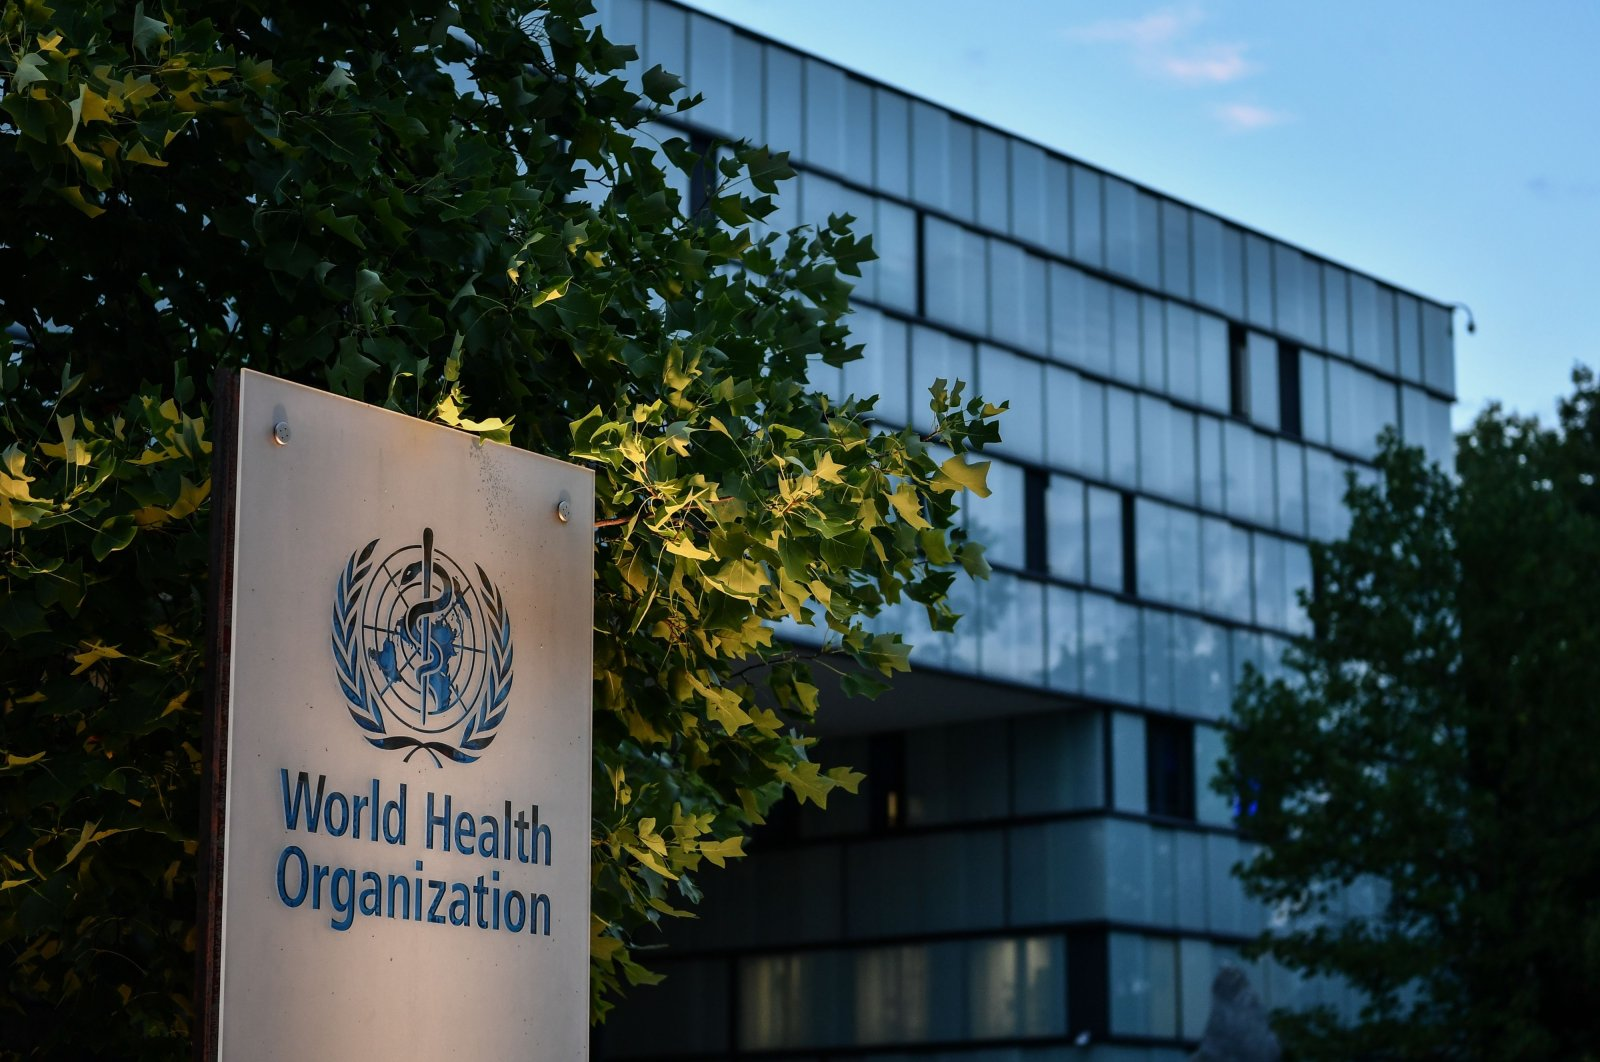 The sign for the World Health Organization (WHO) in front of its headquarters in Geneva, Aug. 17, 2020. (AFP Photo)